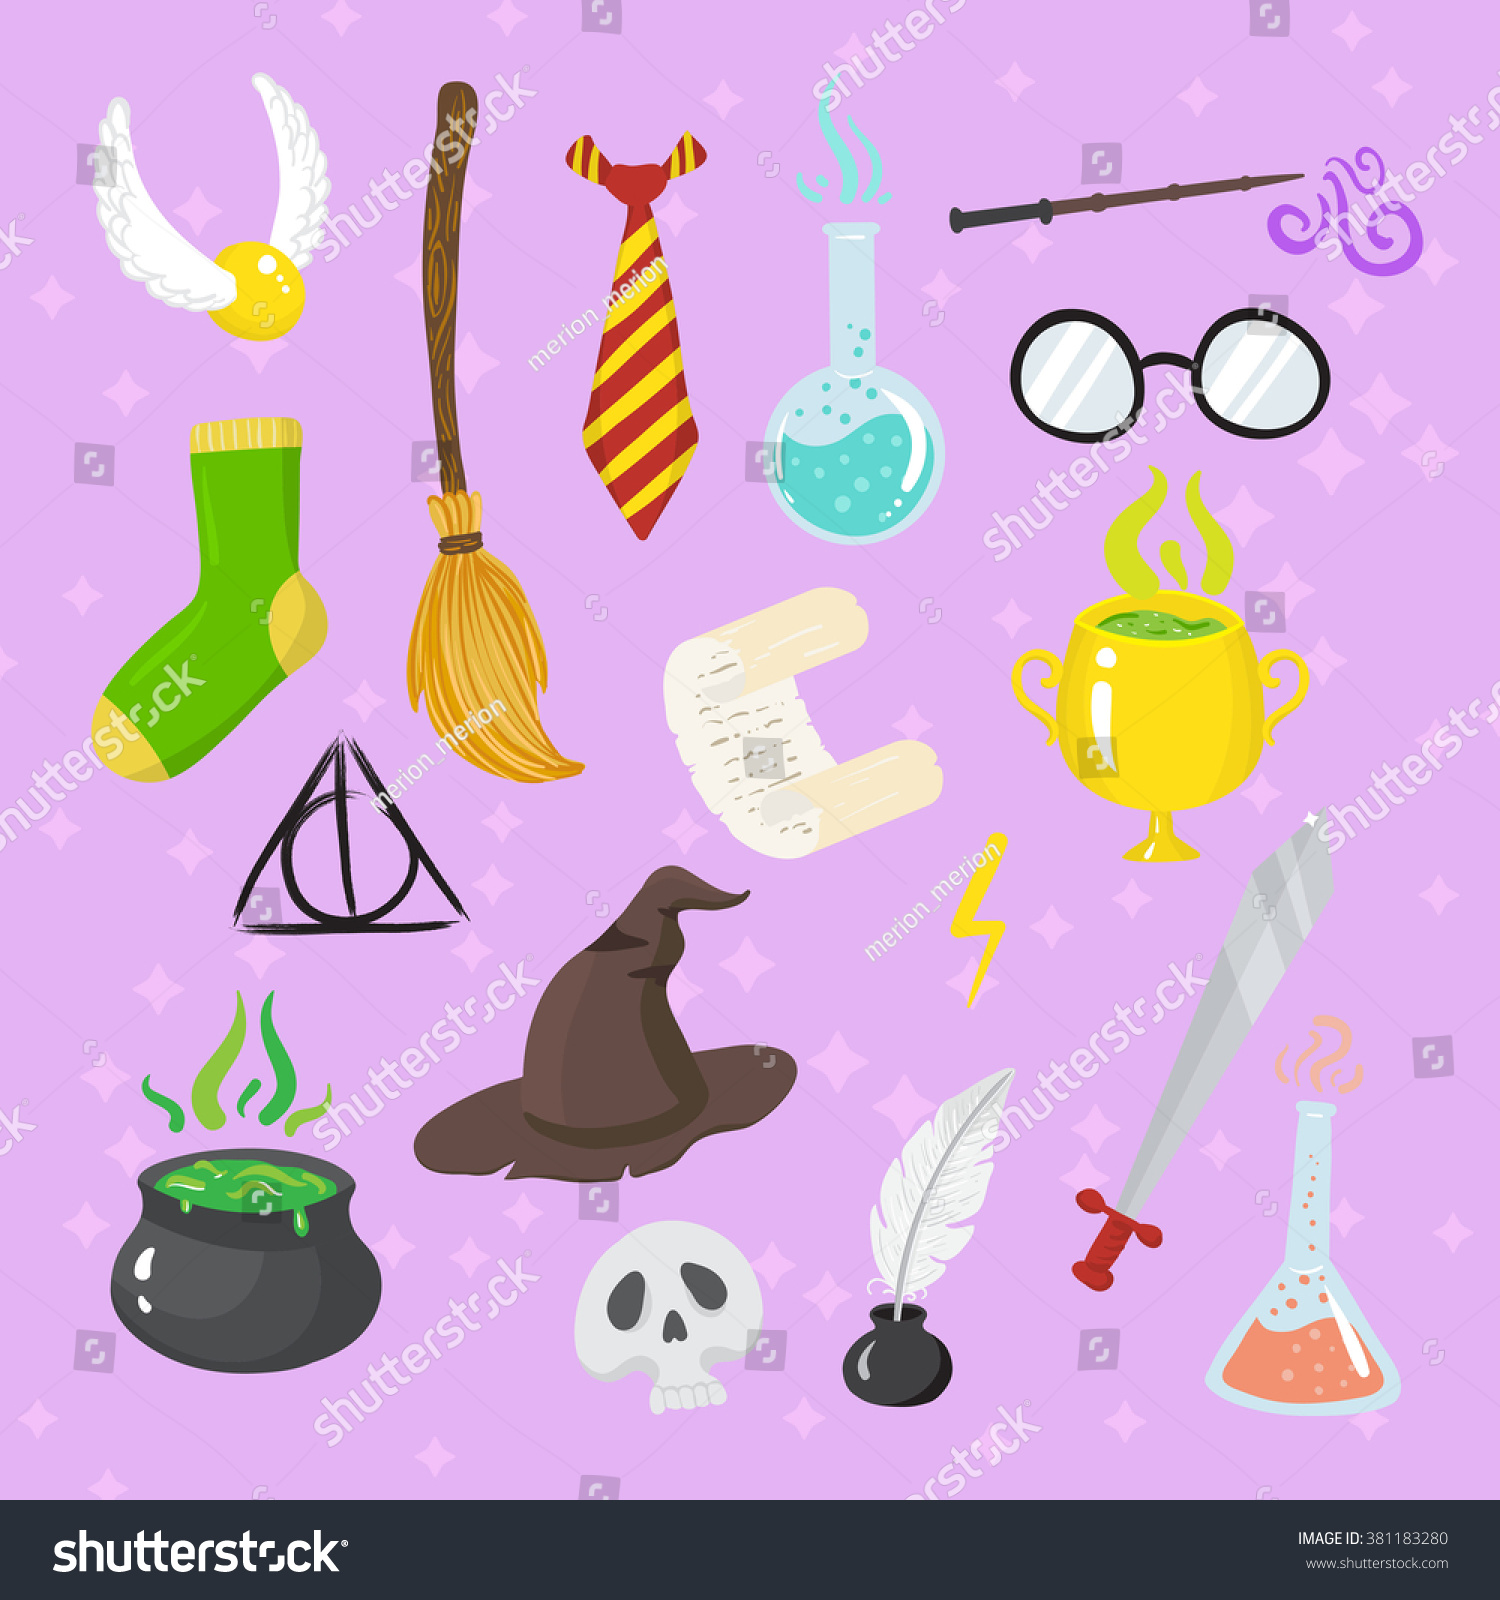 Different magic elements for witches in cartoon style Vector illustration